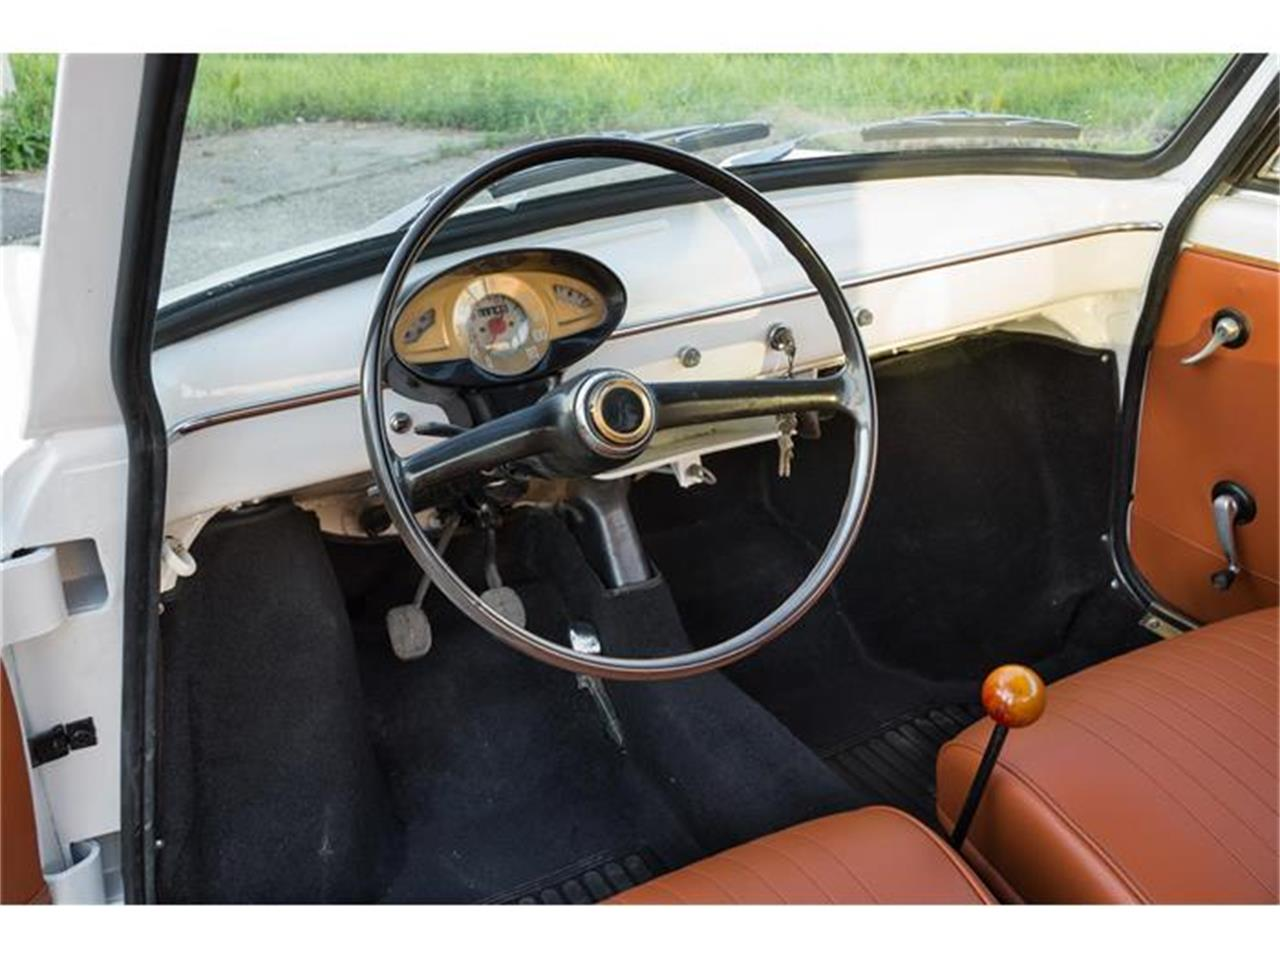 1964 Autobianchi Bianchina Berlina for sale in Conroe, TX – photo 11